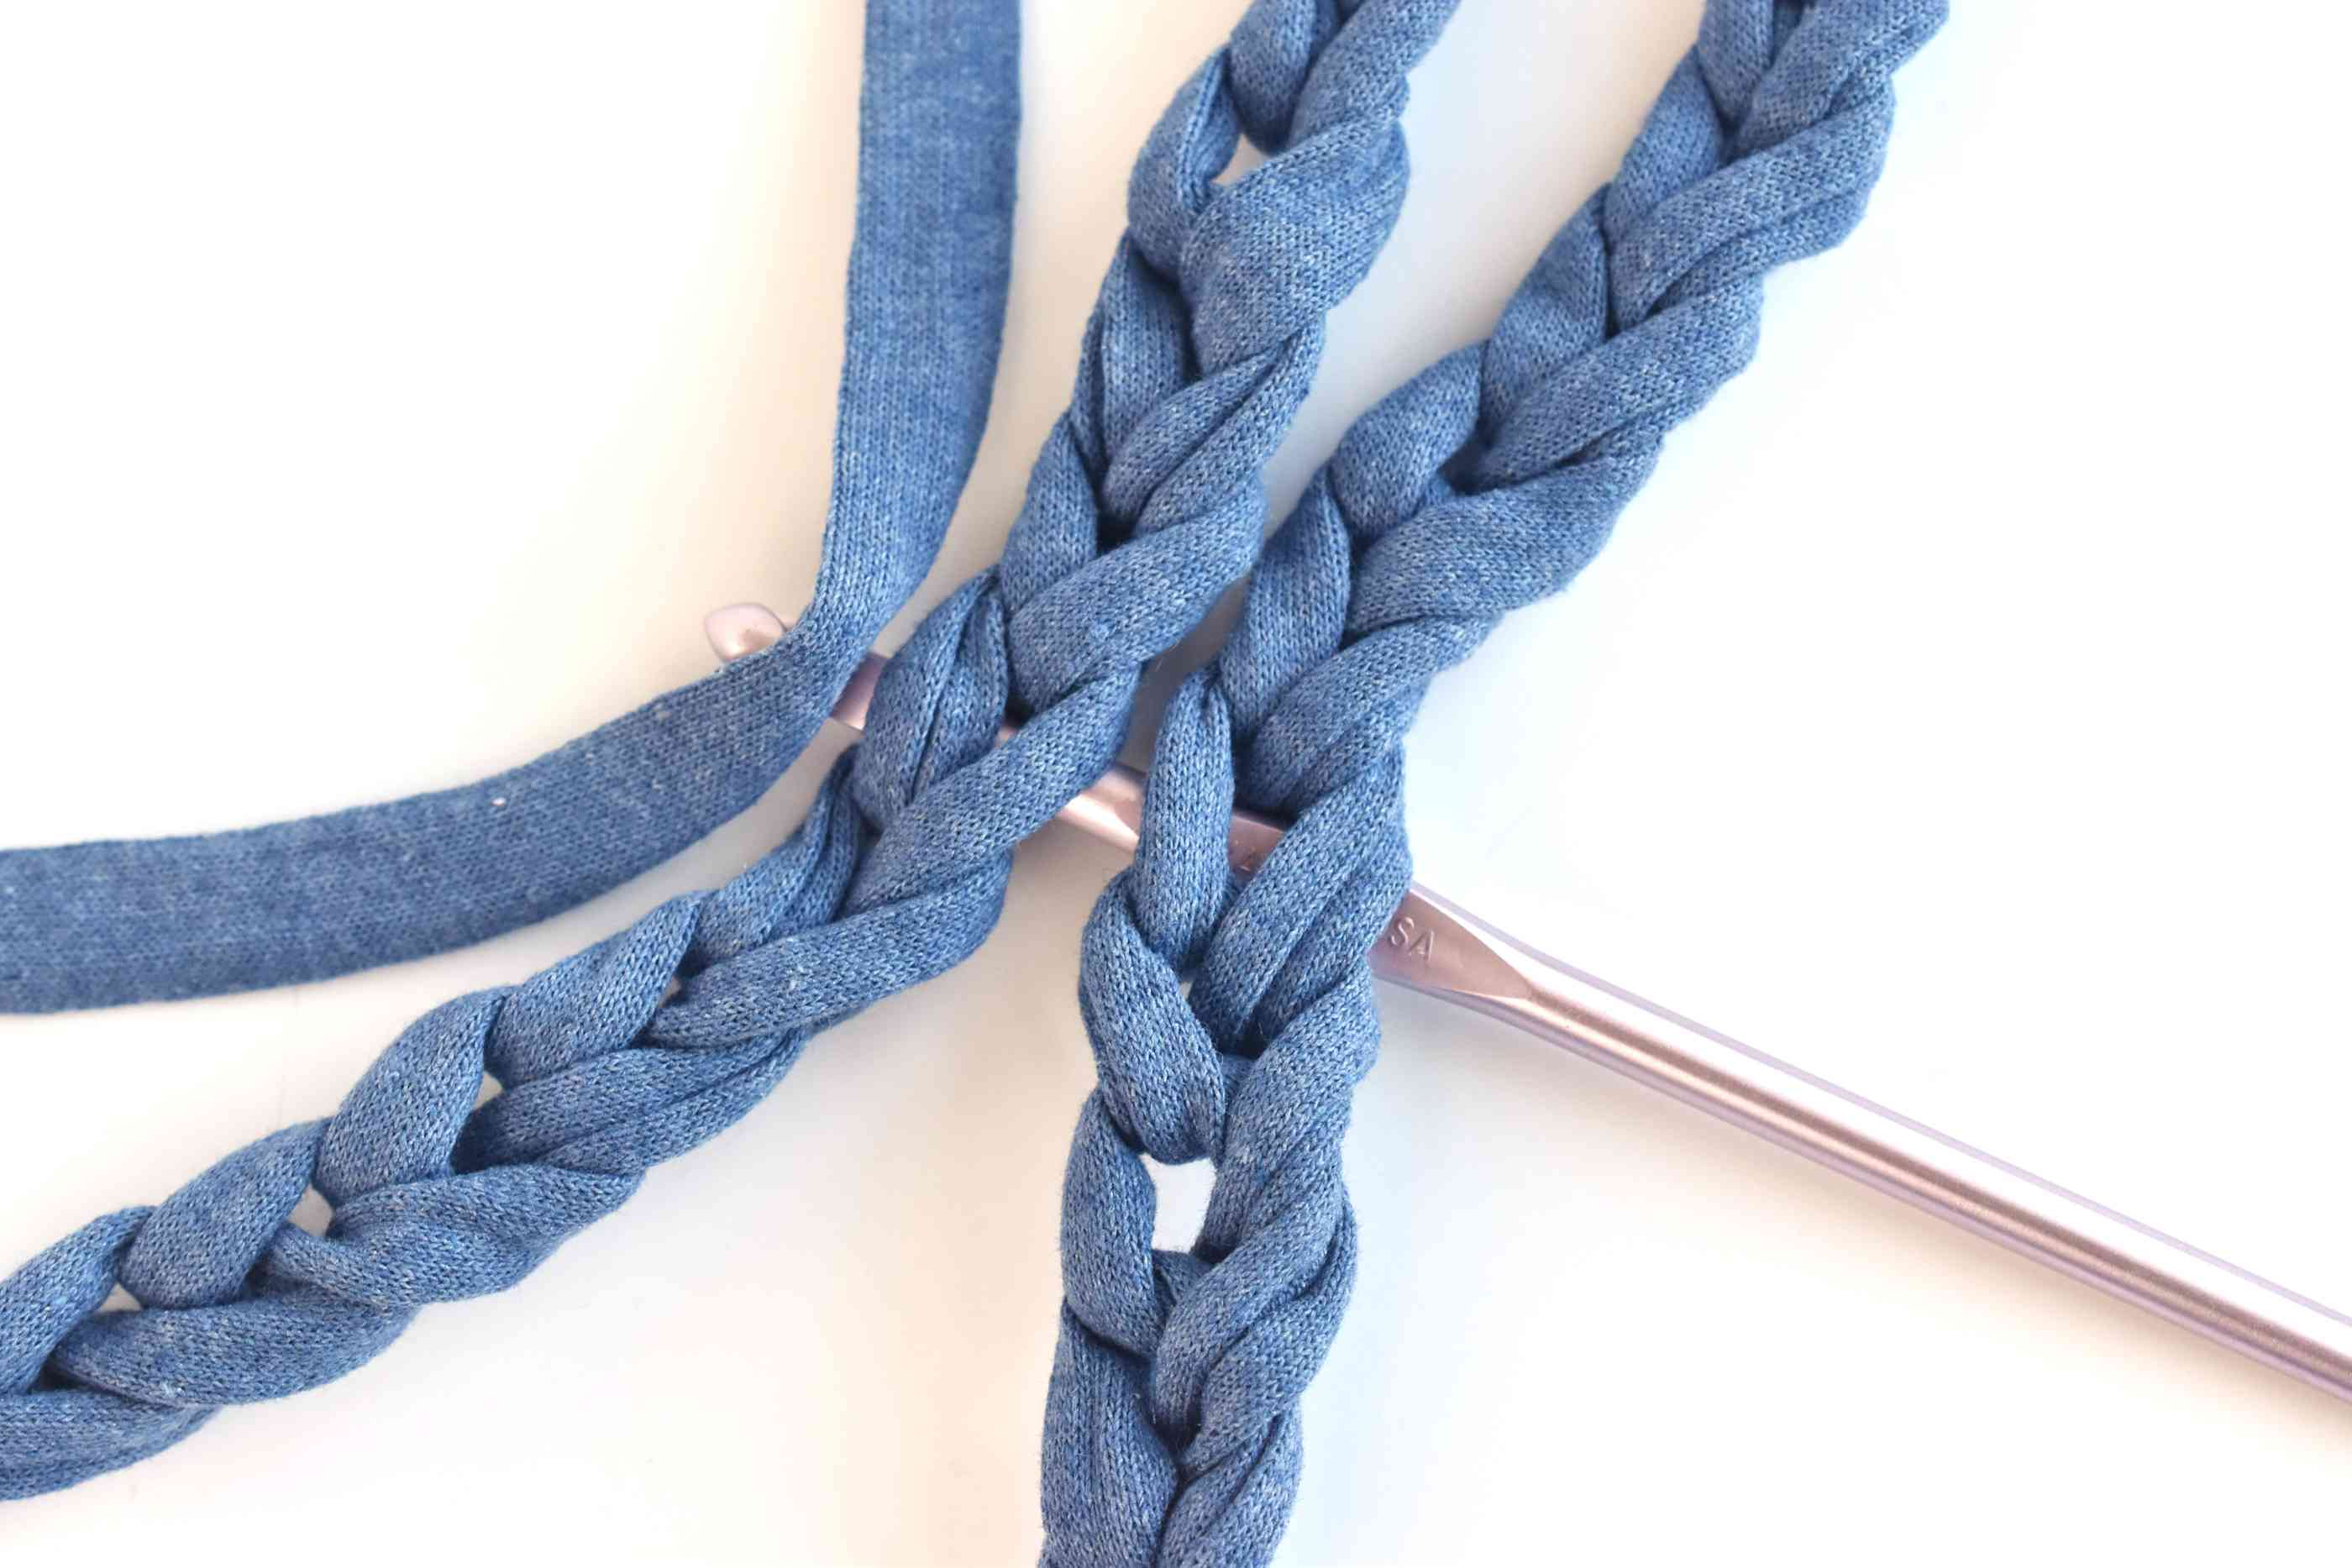 Draw a Piece of Yarn Through the Chain Hangers